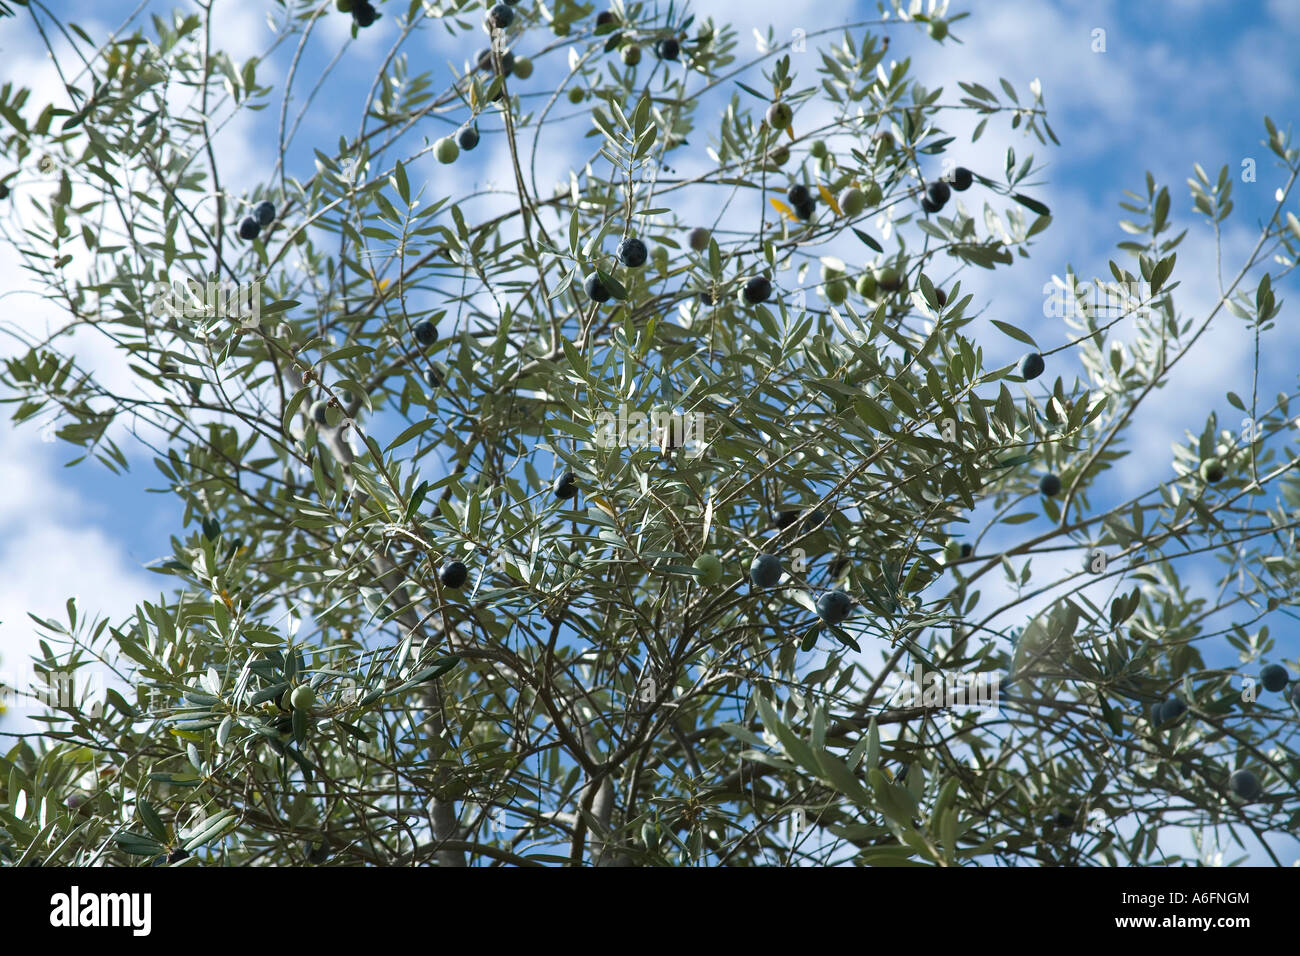 California Olive Tree Full Of Olives Ready To Harvest Stock Photo